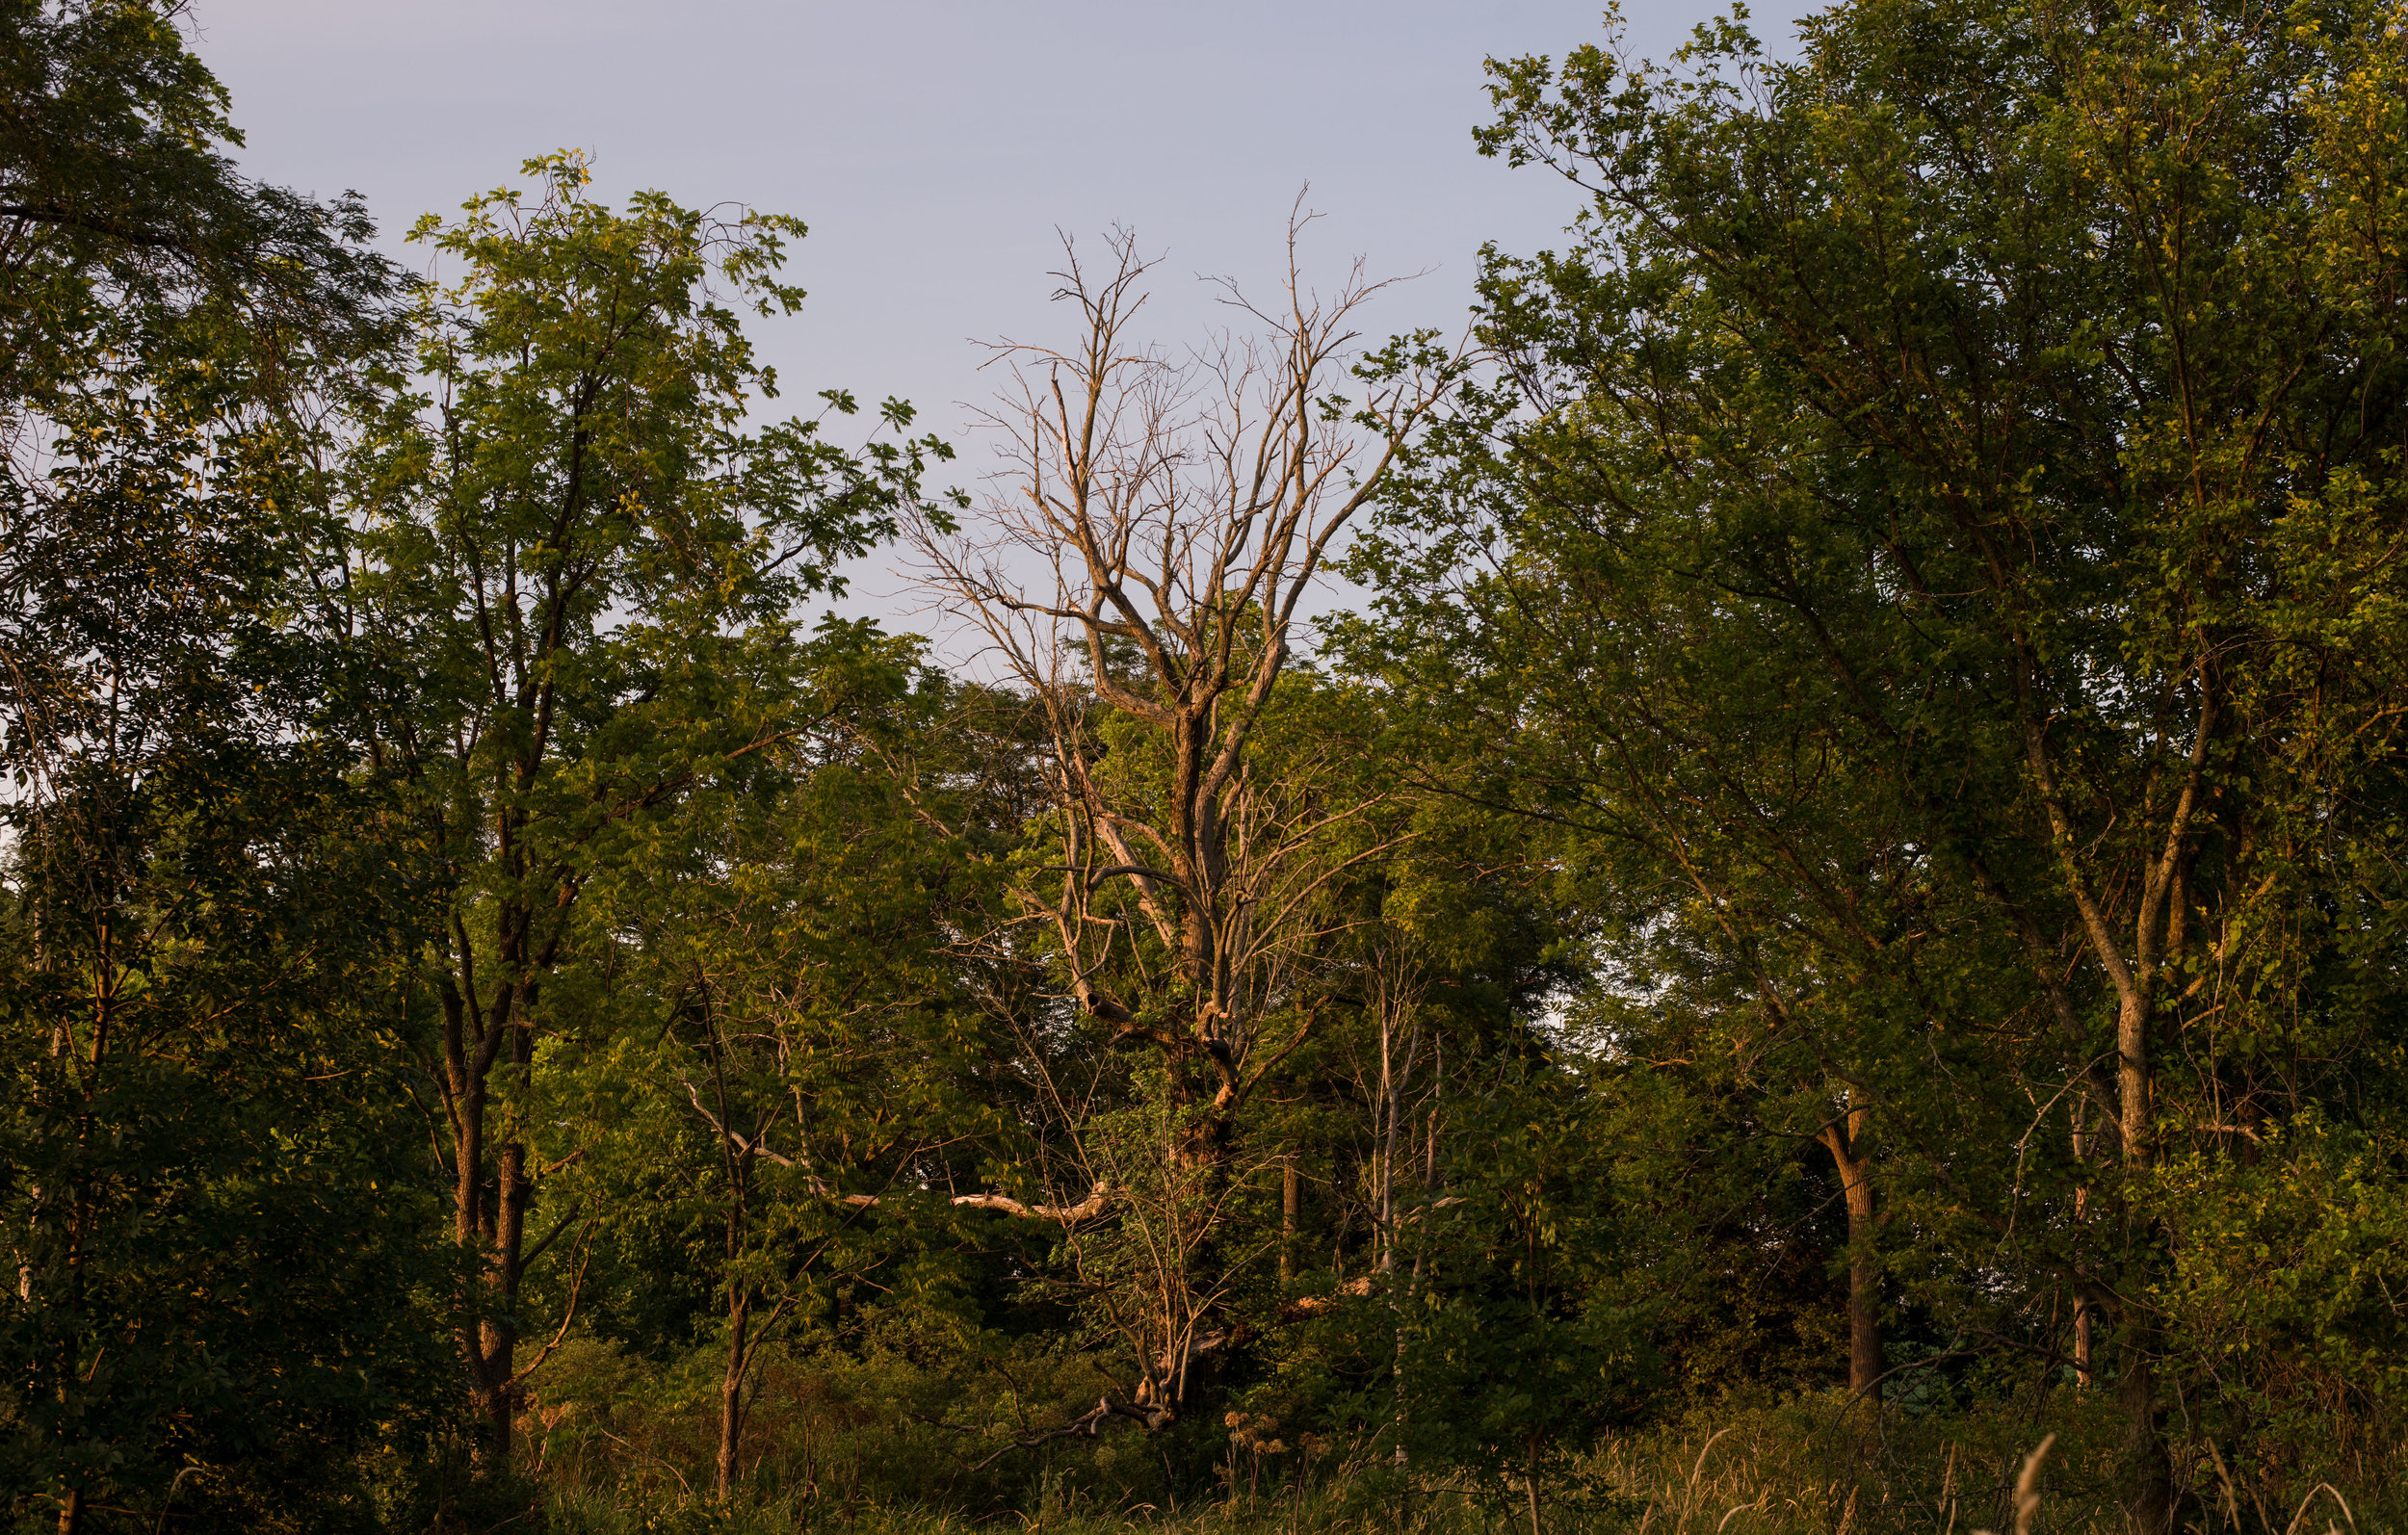 My uncle is hopeful this dead Ash tree will be useful as a nesting place for bald eagles.